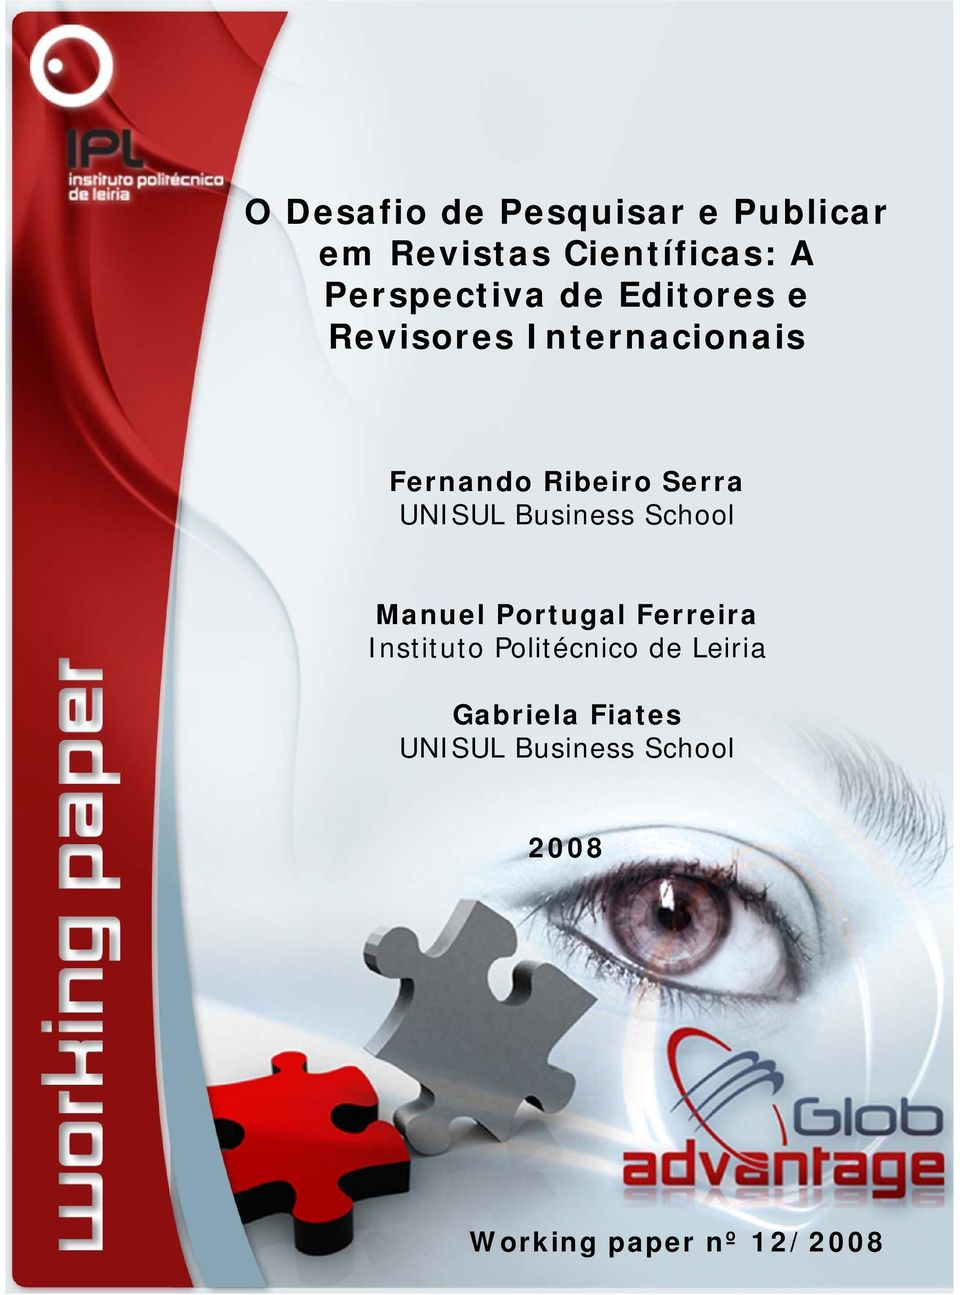 Serra UNISUL Business School Manuel Portugal Ferreira Instituto